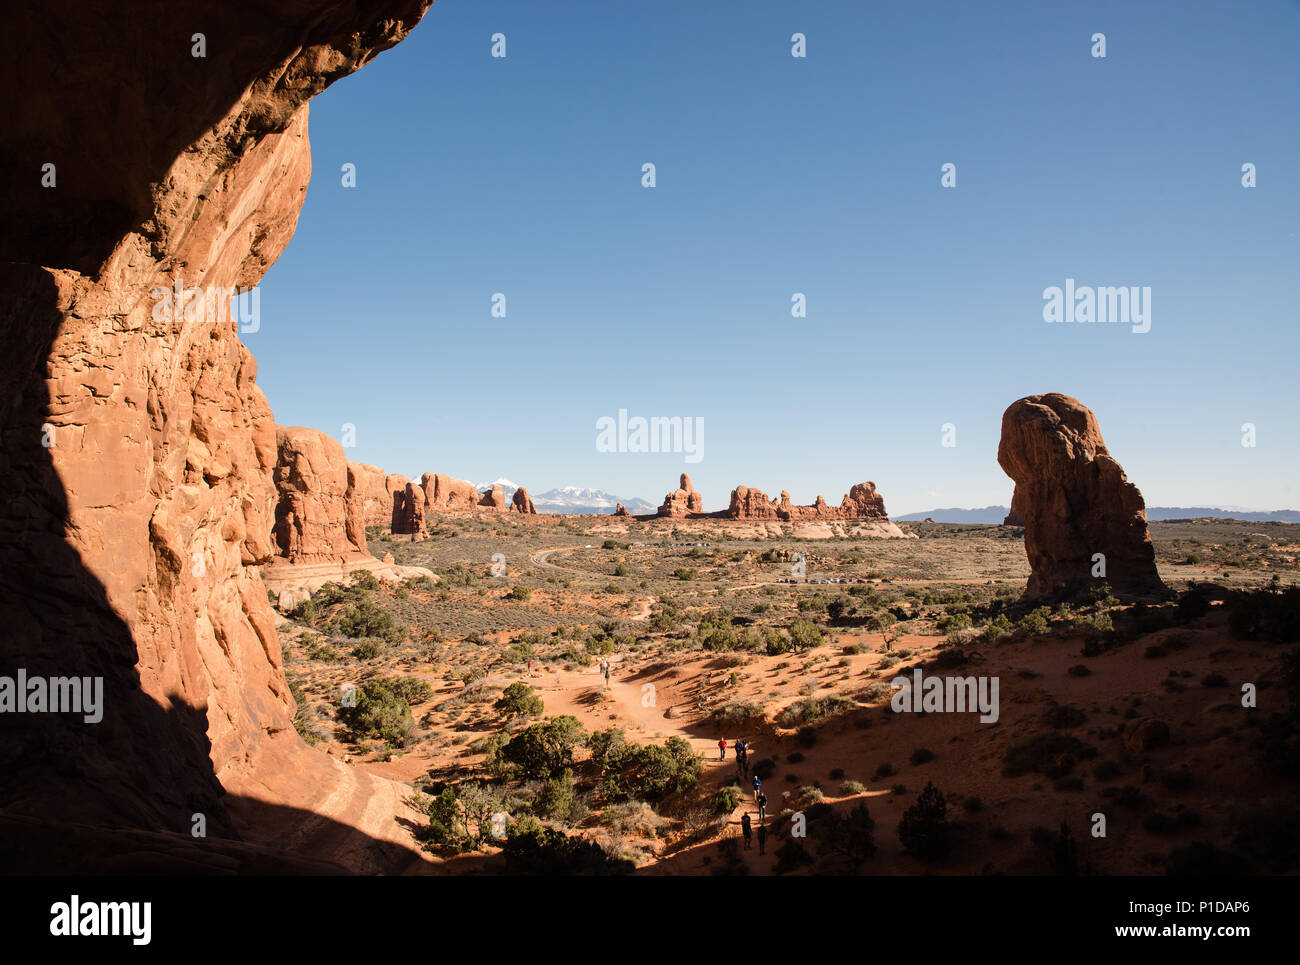 Scenic landscape view at Arches National Park, Utah. - Stock Image